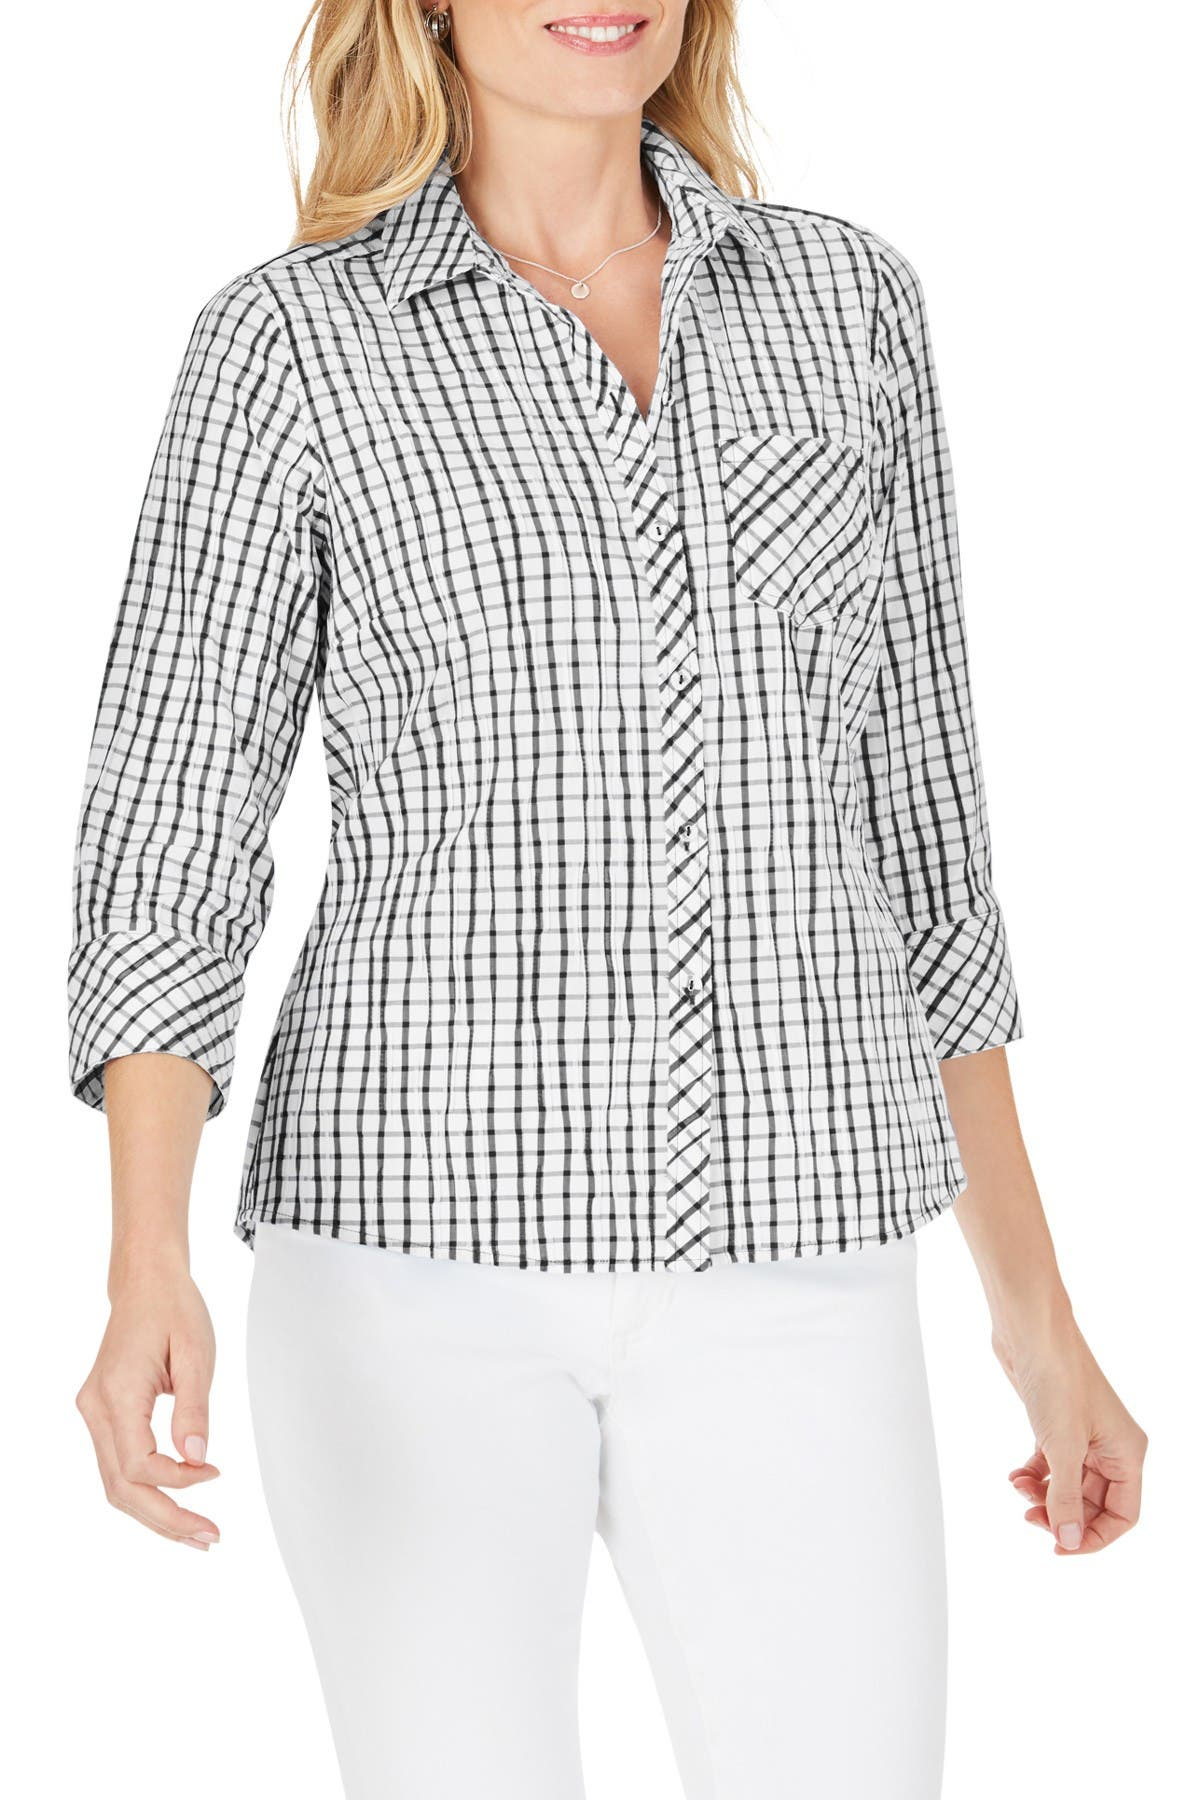 Image of FOXCROFT Hampton Crinkle Plaid Print Shirt